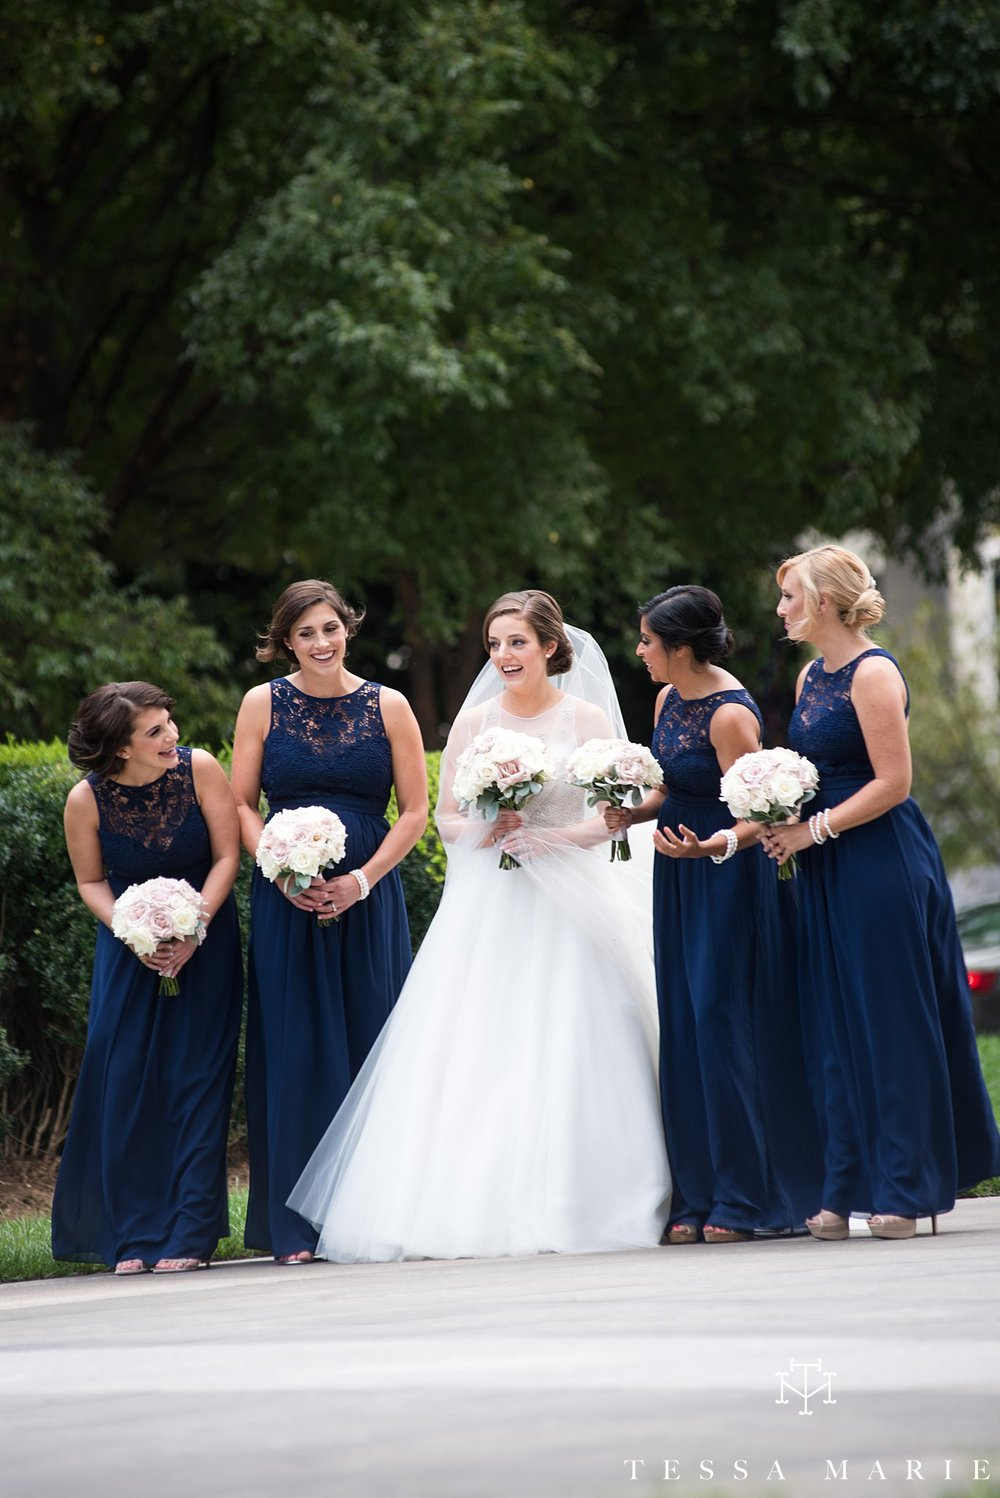 atlanta_wedding_photographer_tessa_marie_weddings_lowes_hotel_peachtree_midtown_fall_wedding_0309.jpg